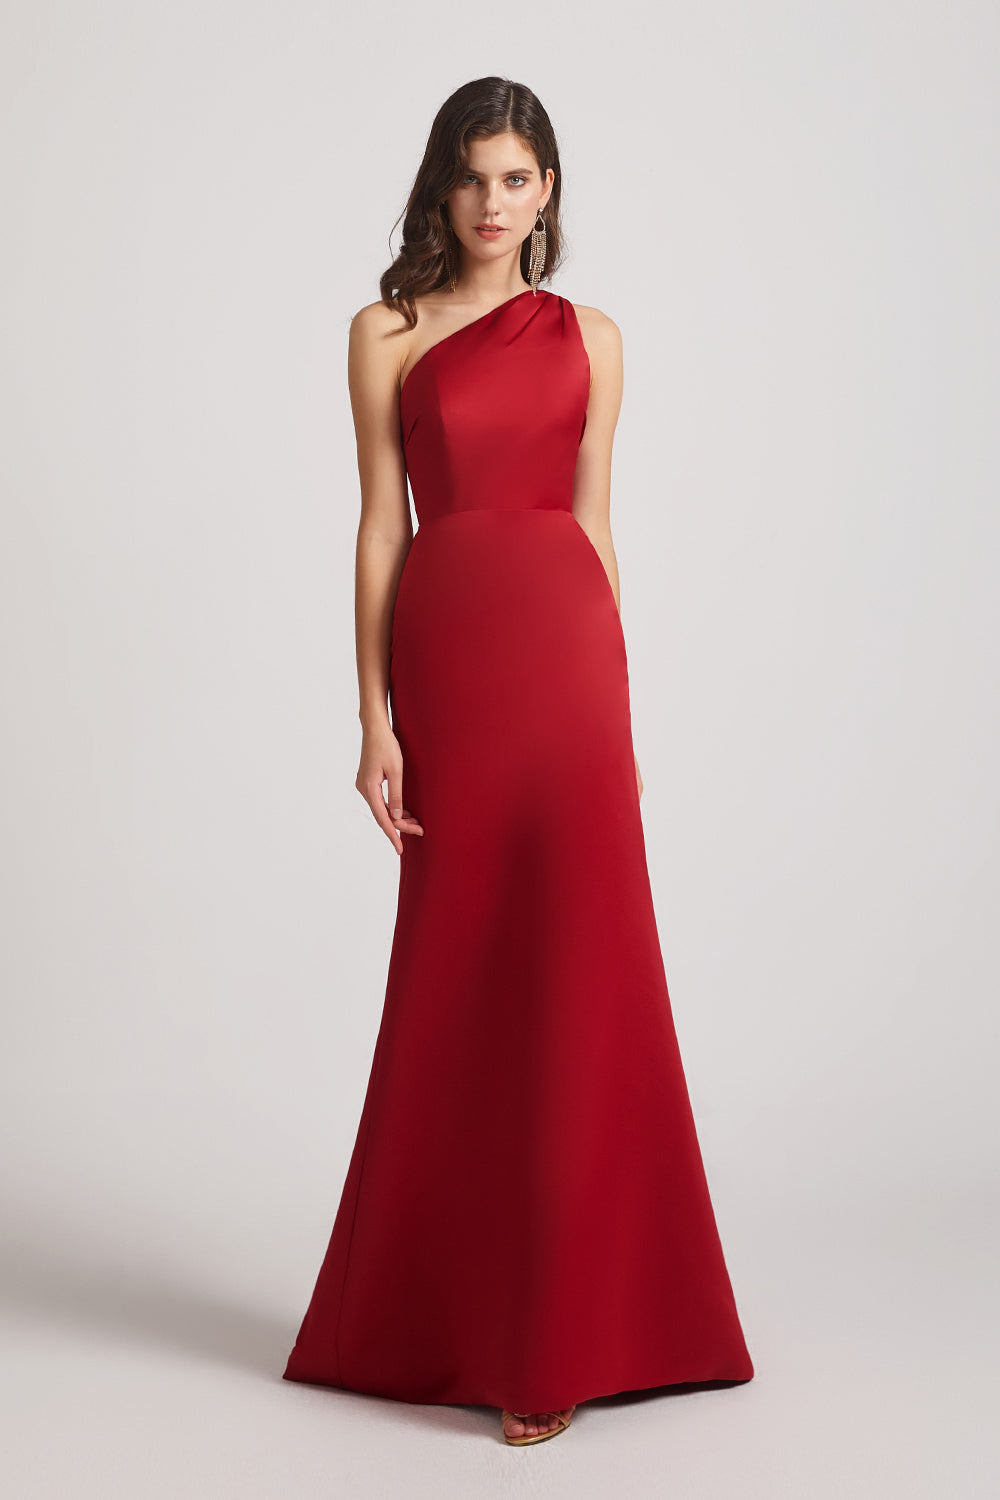 red satin long maids of honor dresses